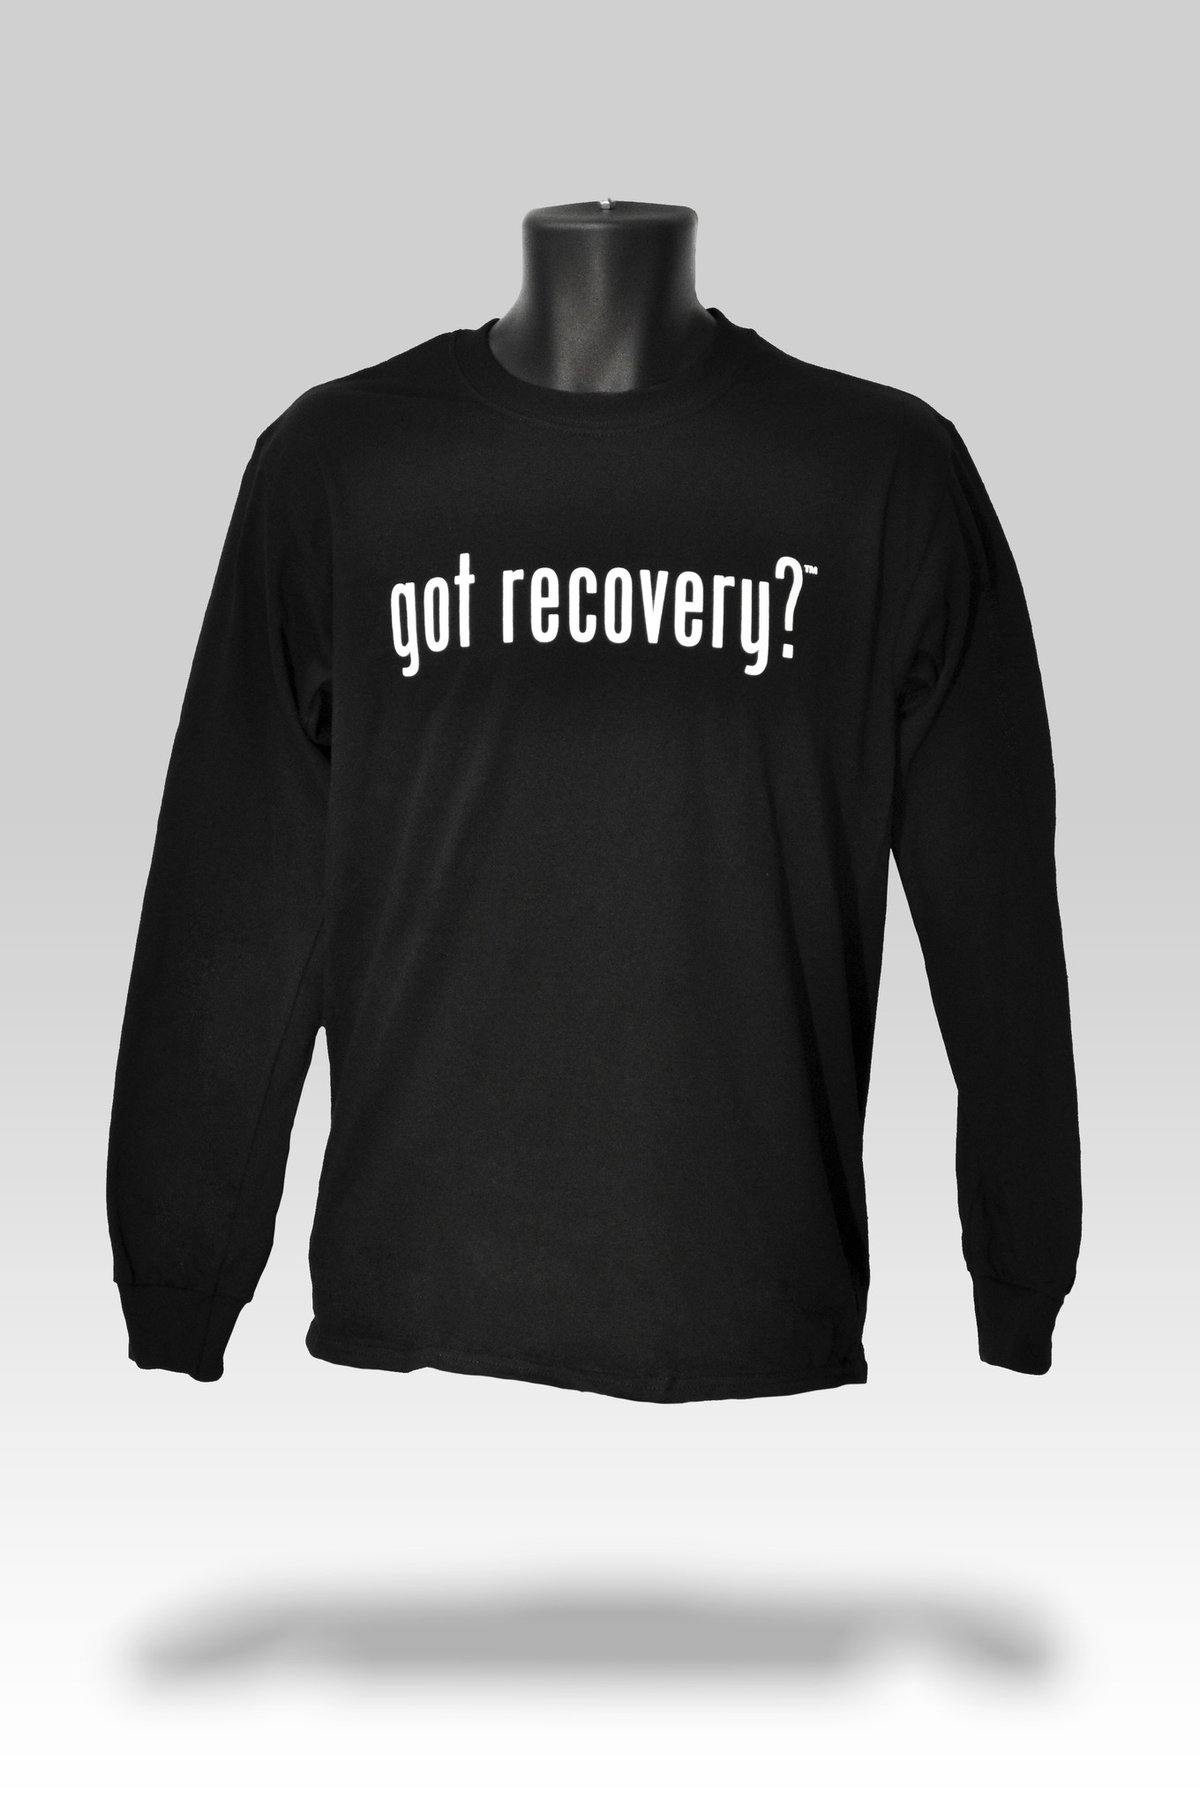 Got Recovery? Long Sleeve T-Shirt in Black (Small)